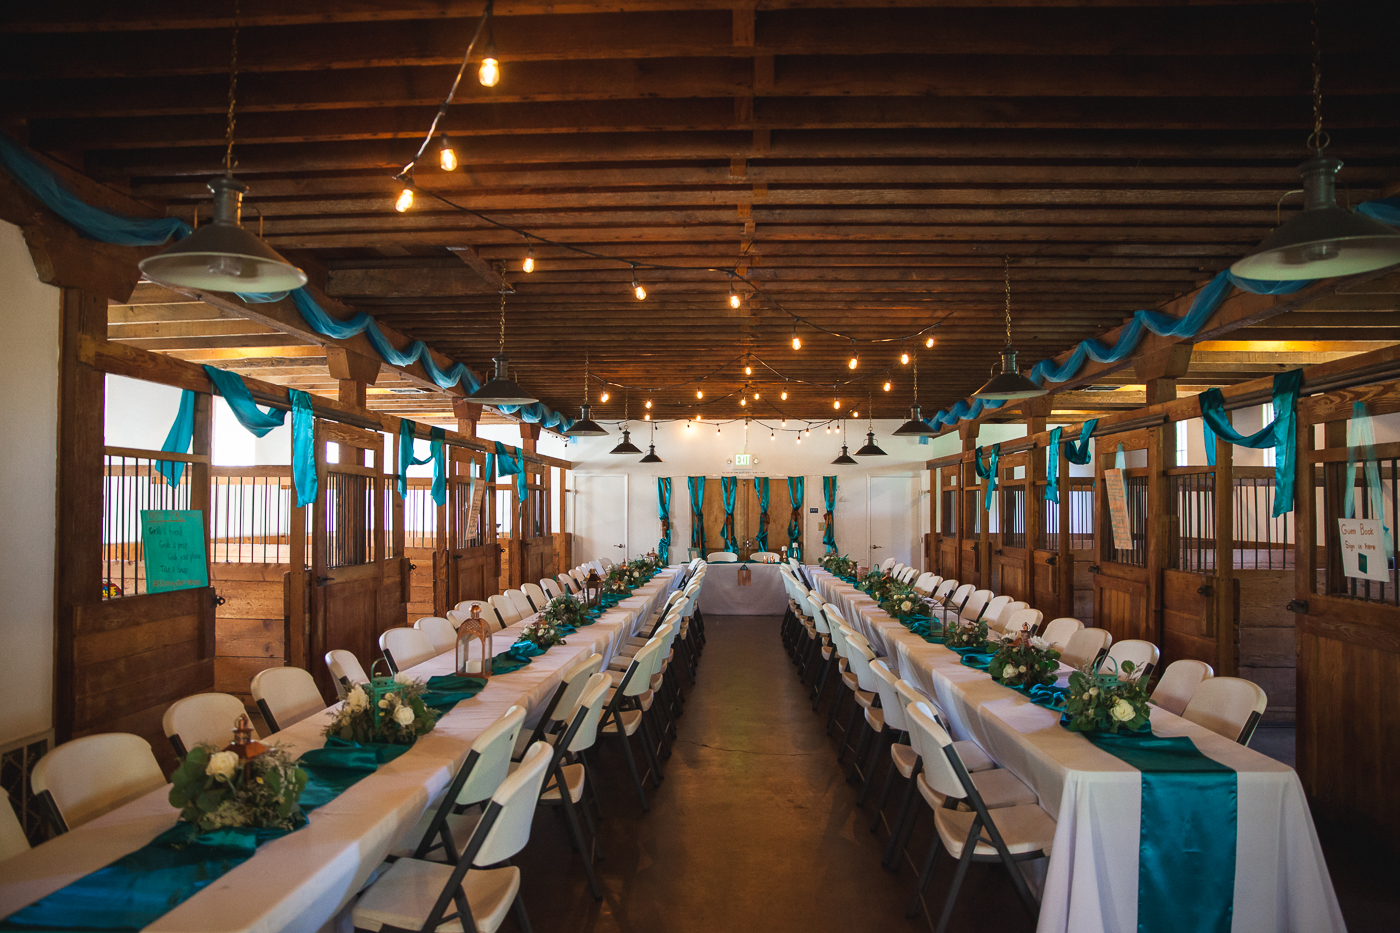 crawford's barn wedding sacramento